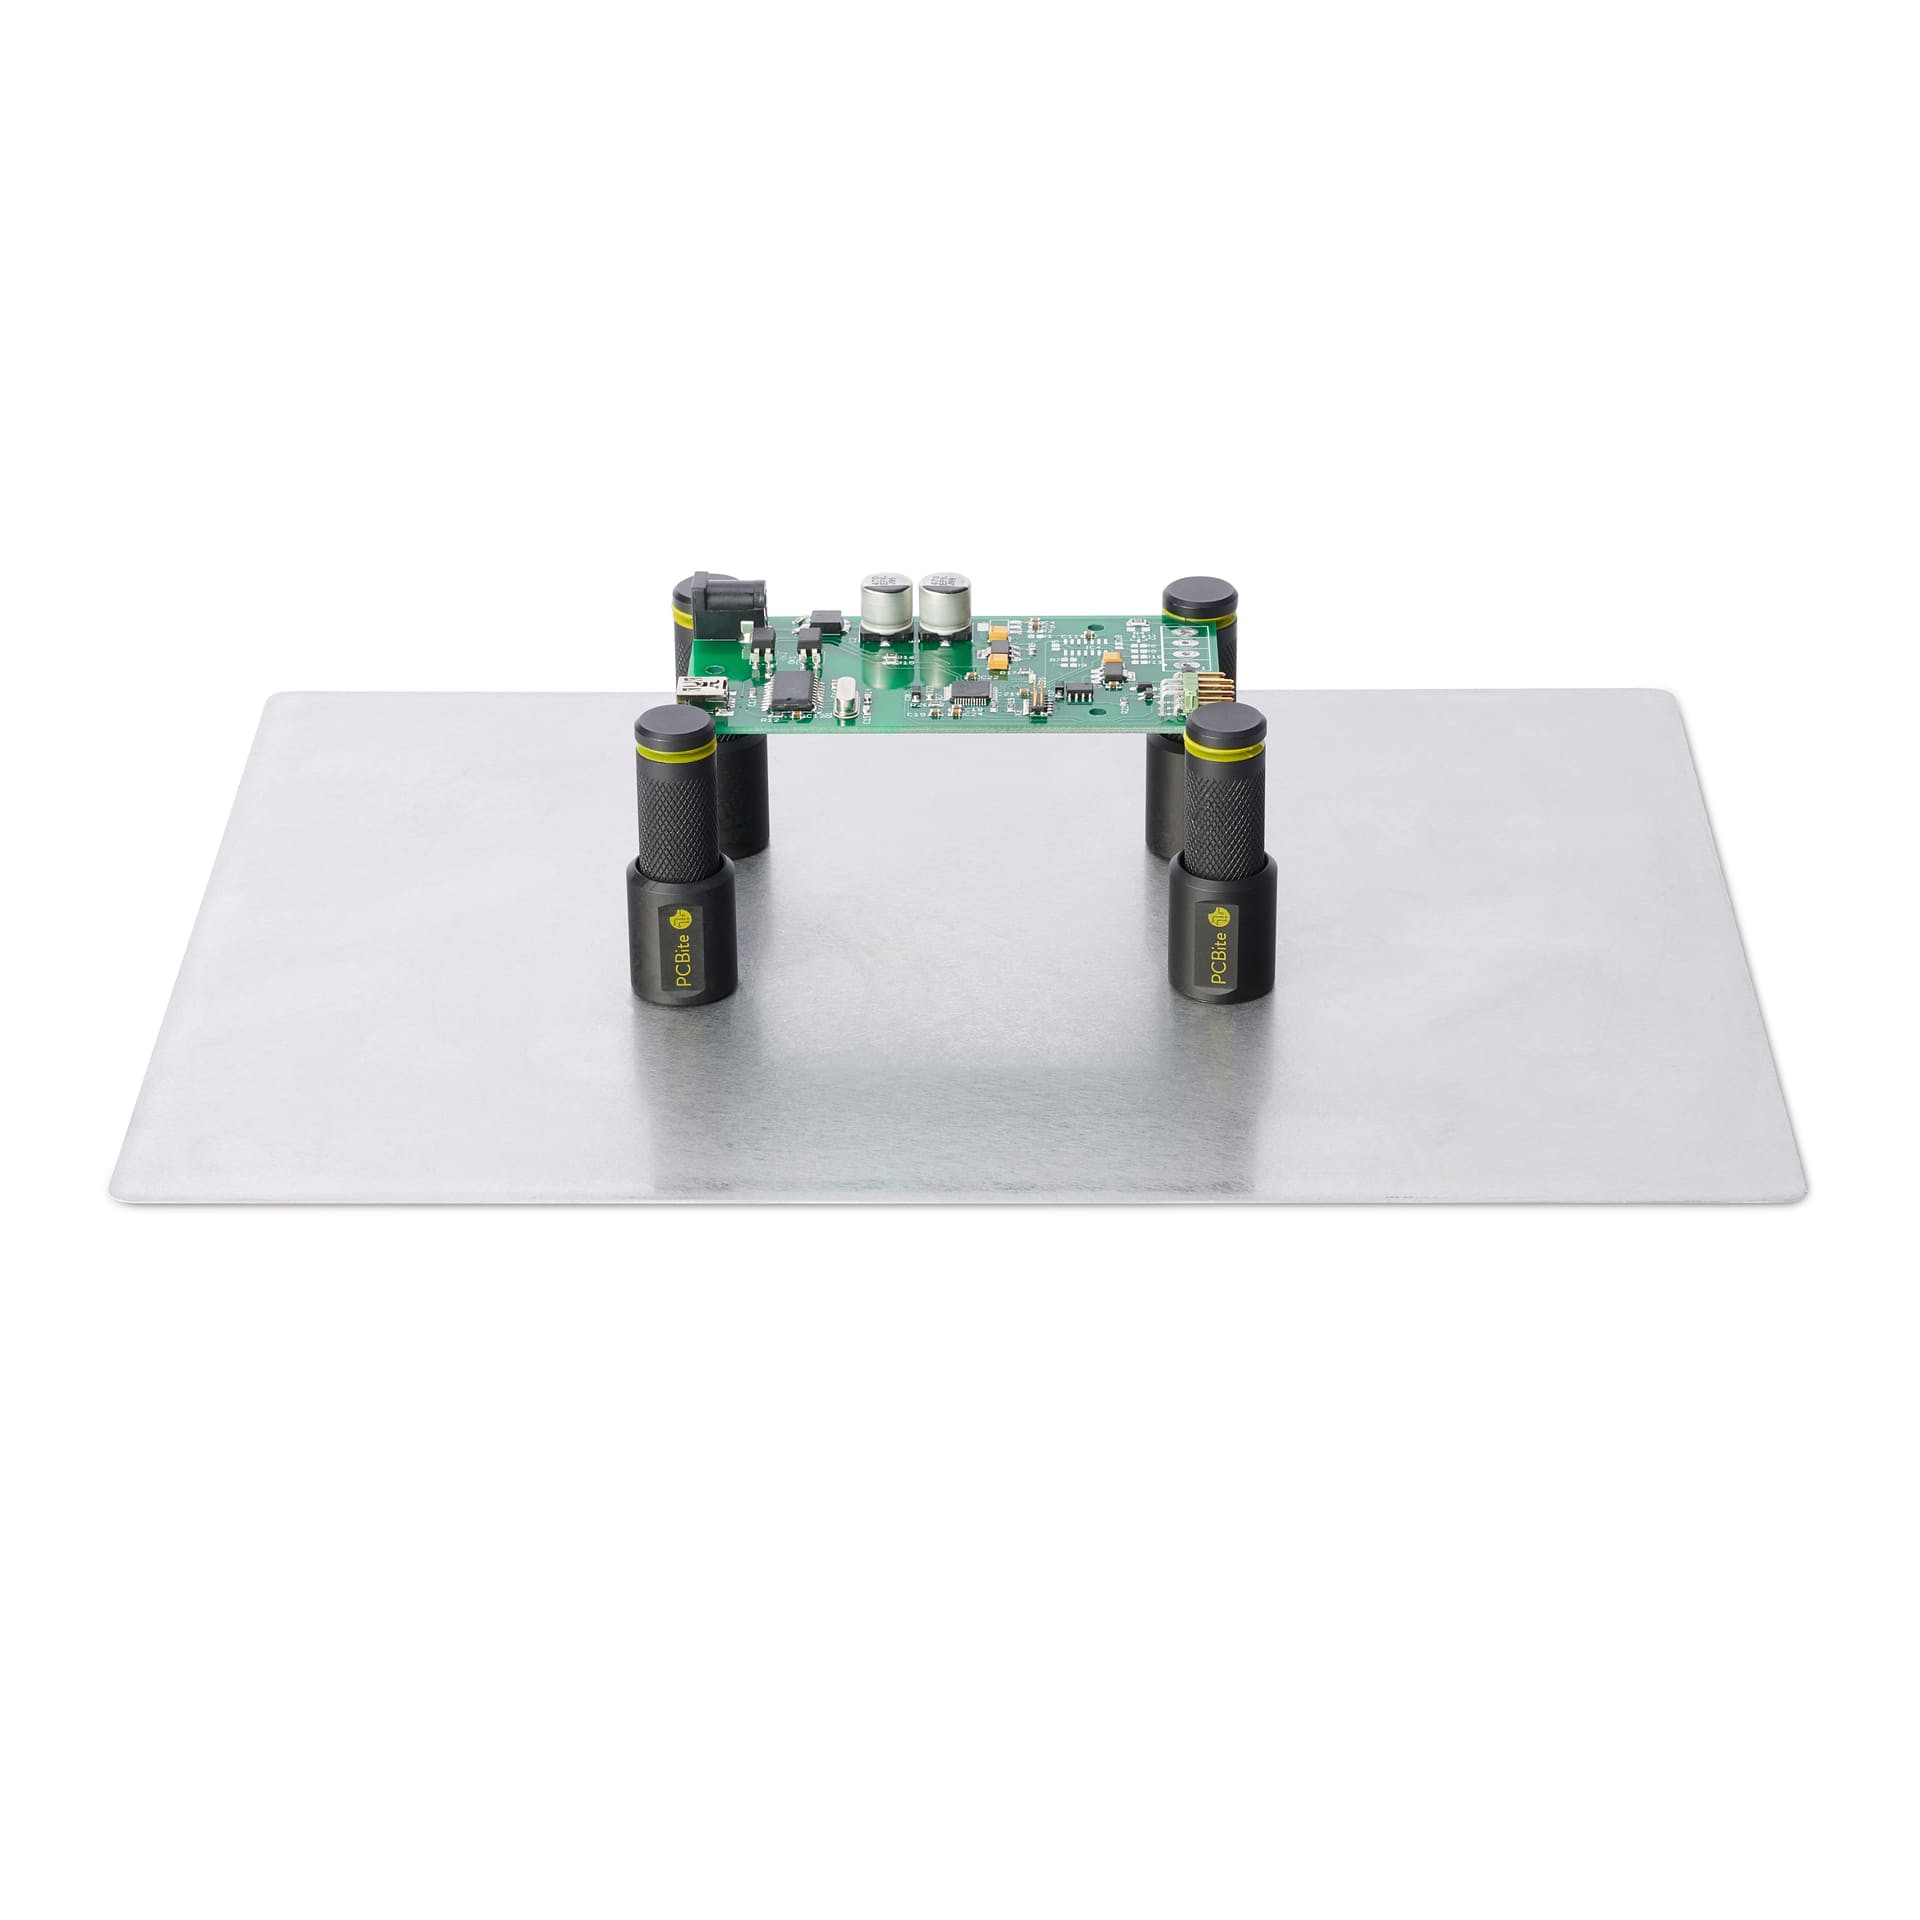 PCBite kit with large base plate